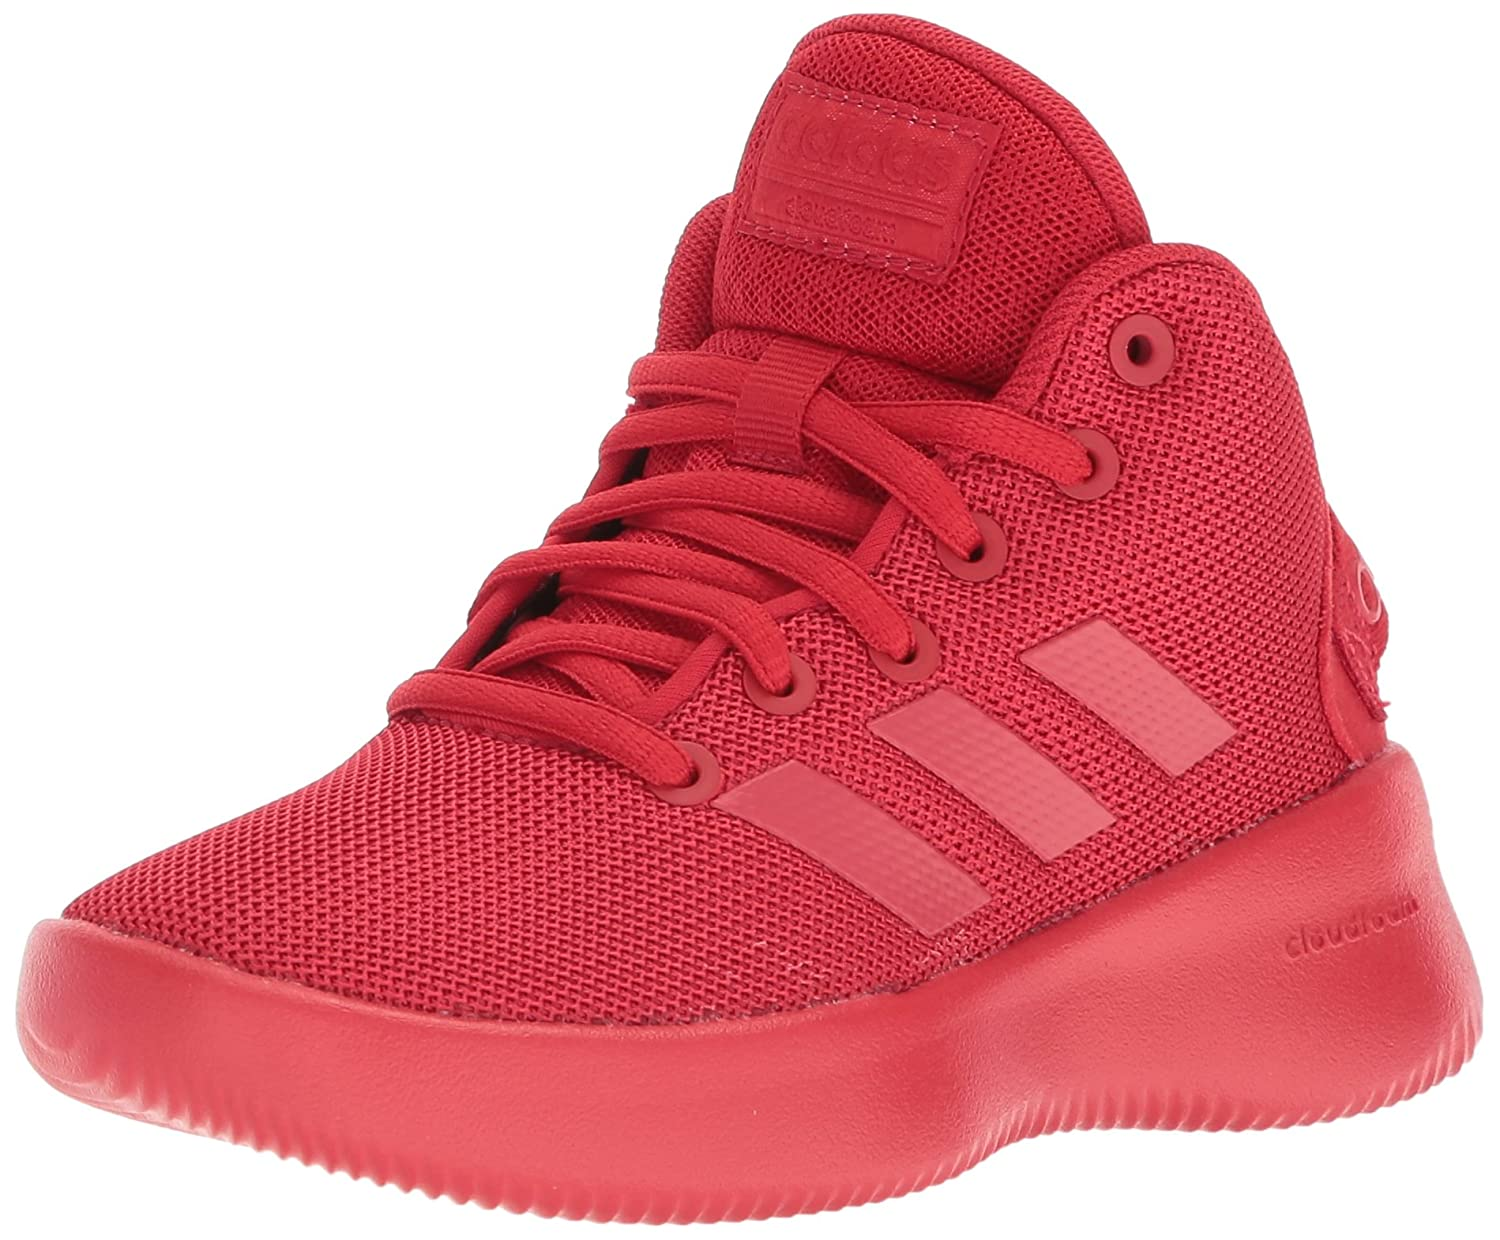 Gentlemen/Ladies adidas Kids' Cf Refresh Basketball Mid Basketball Refresh Shoe durable Known for its good quality retail price VH86147 5e3b3d